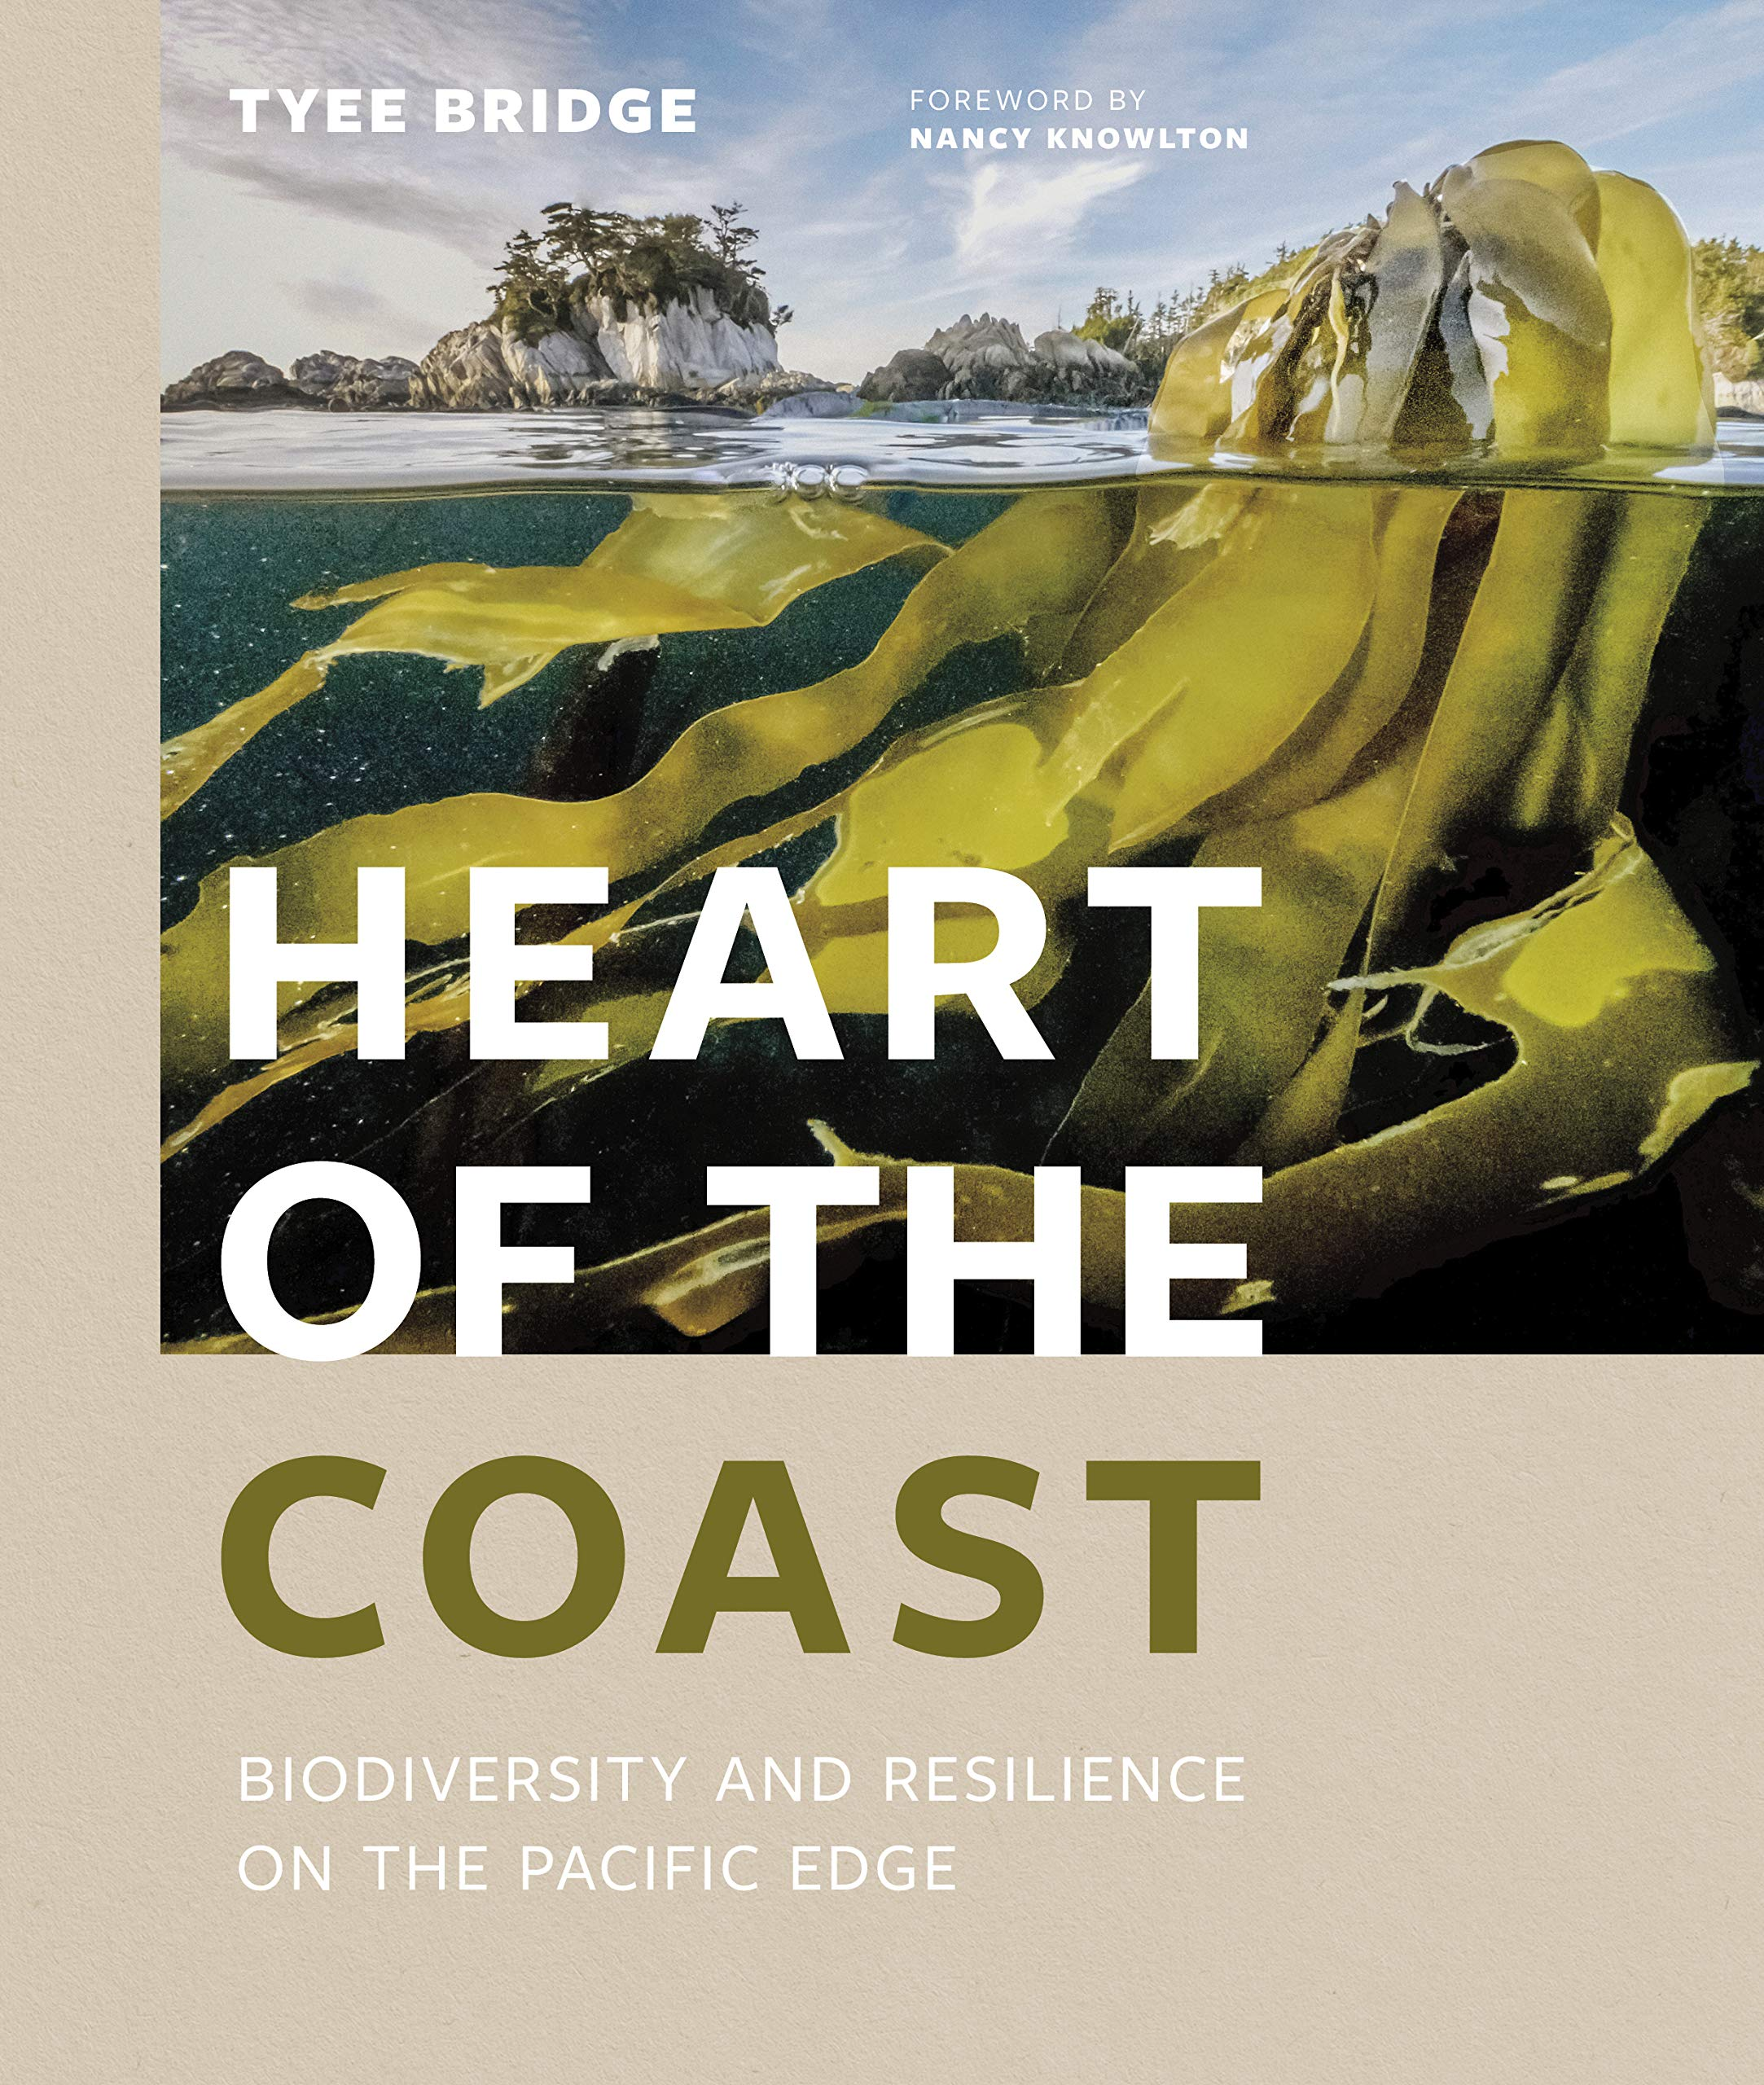 Cover of book Heart of the Coast